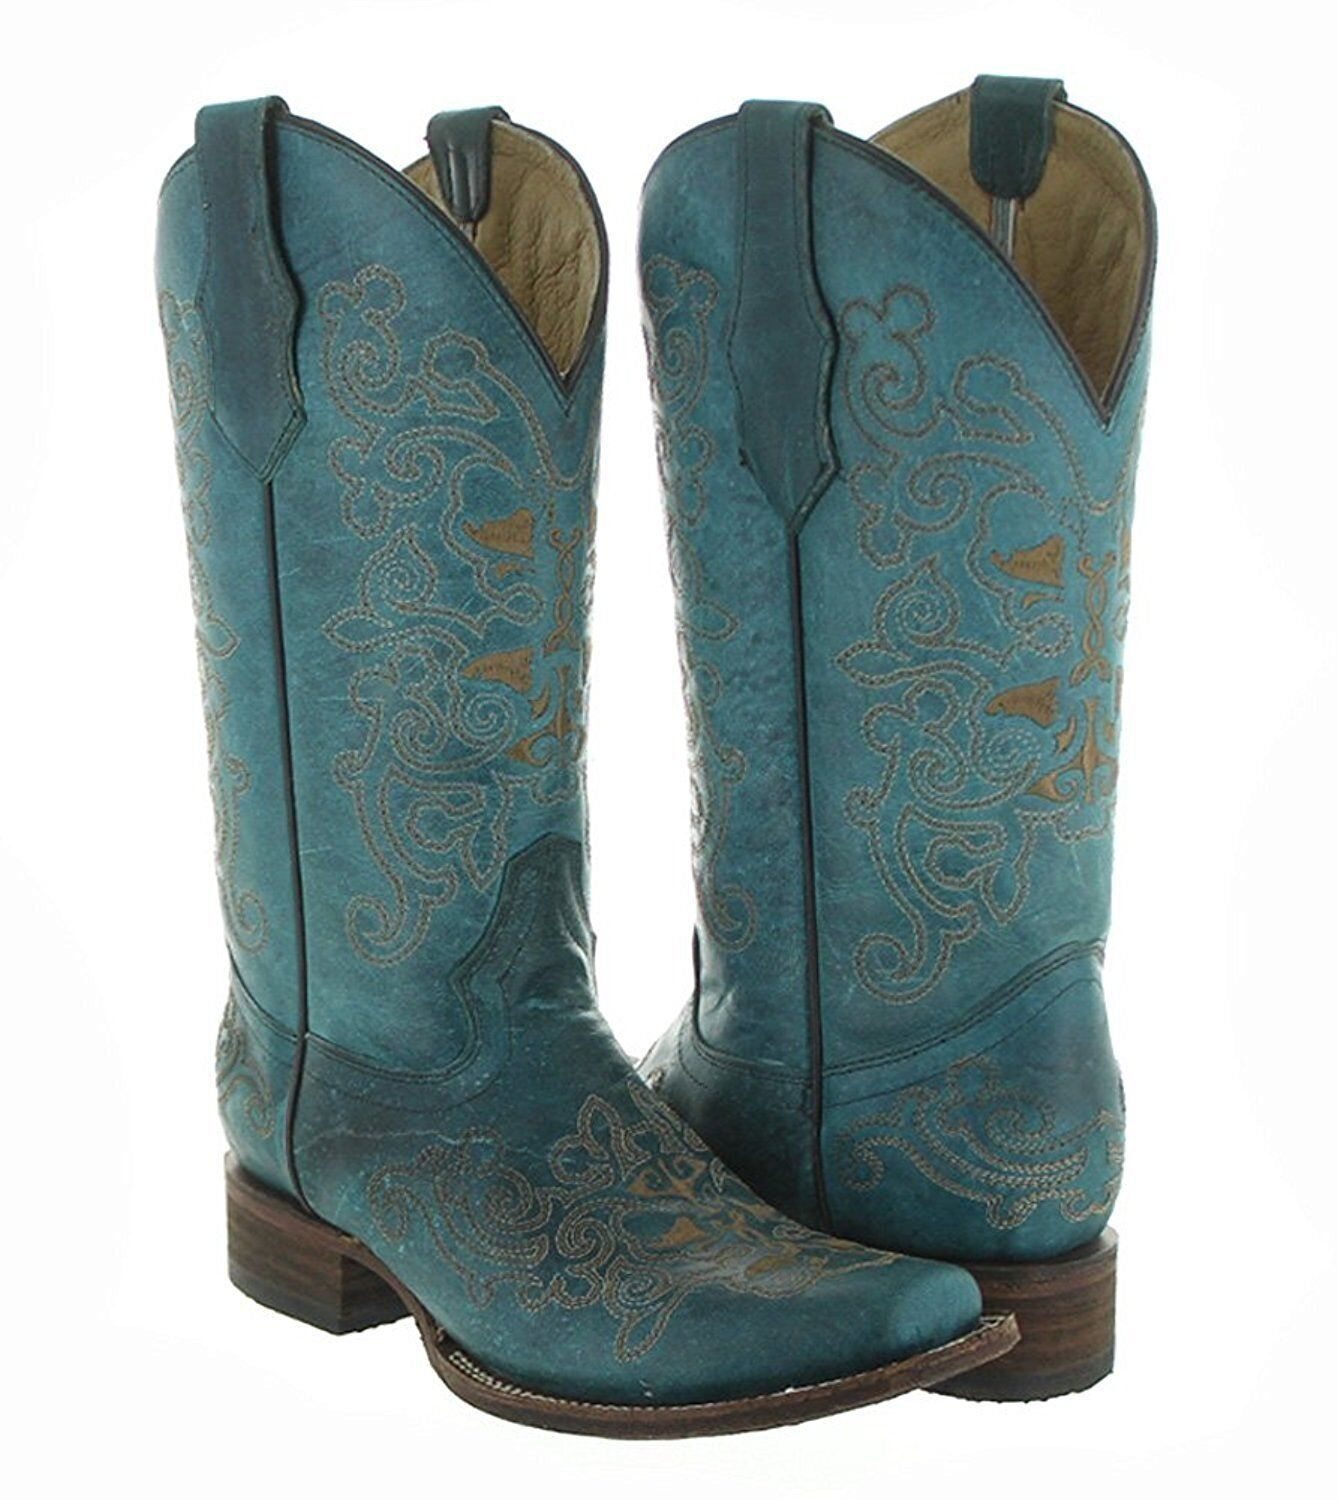 Circle G by Corral Women's Turquoise Embroidered Square Toe Cowgirl Boots L5135